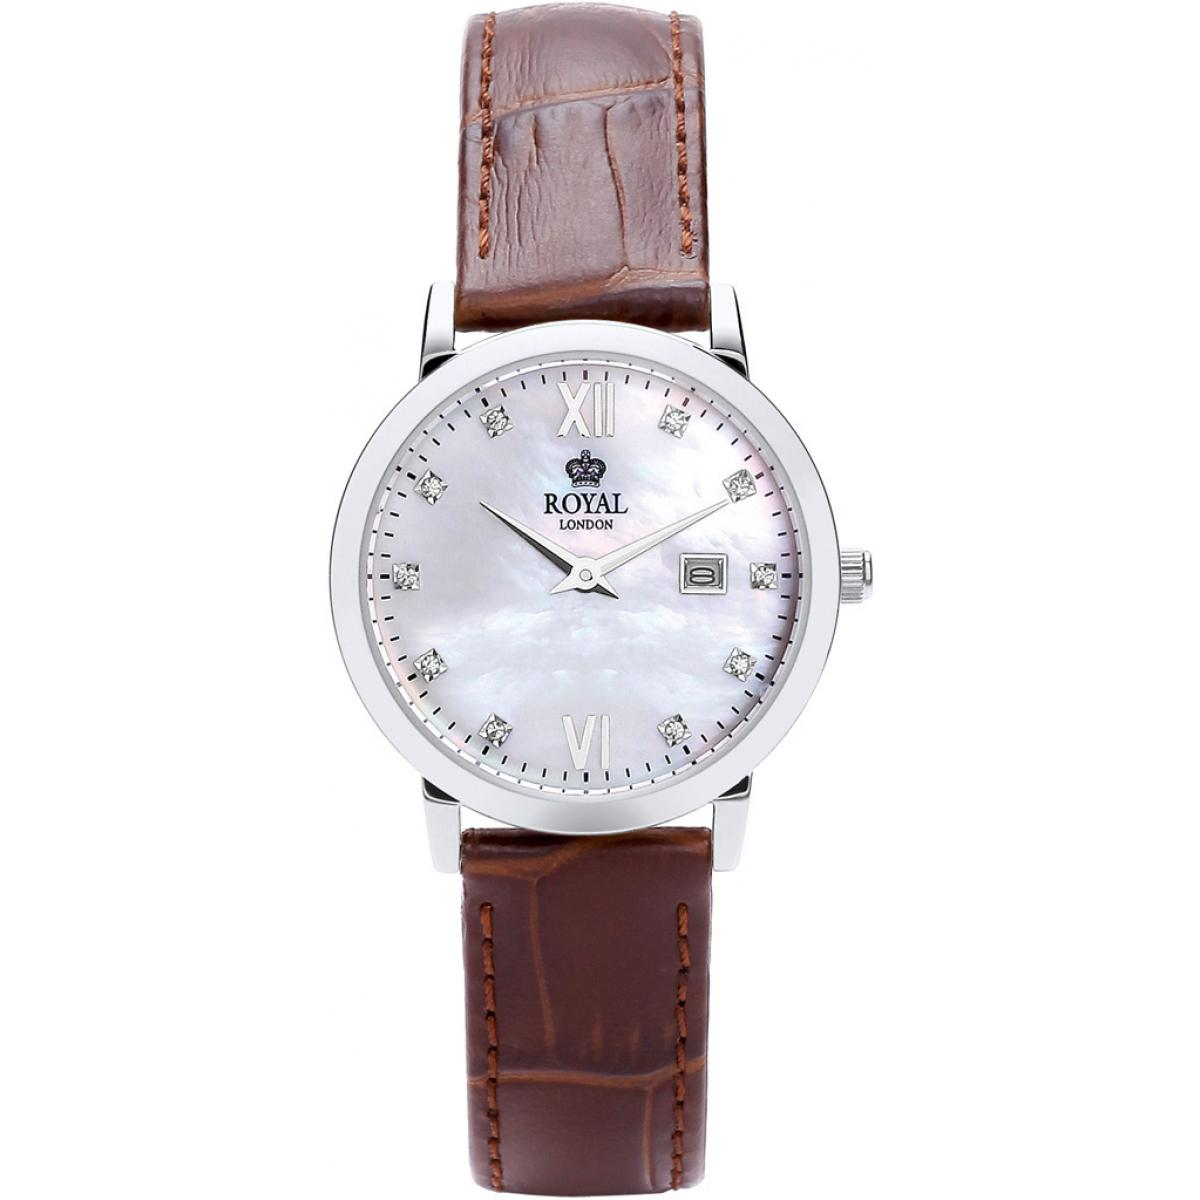 Montre Royal  London 21199-02 - Montre Cuir Marron Vintage Femme